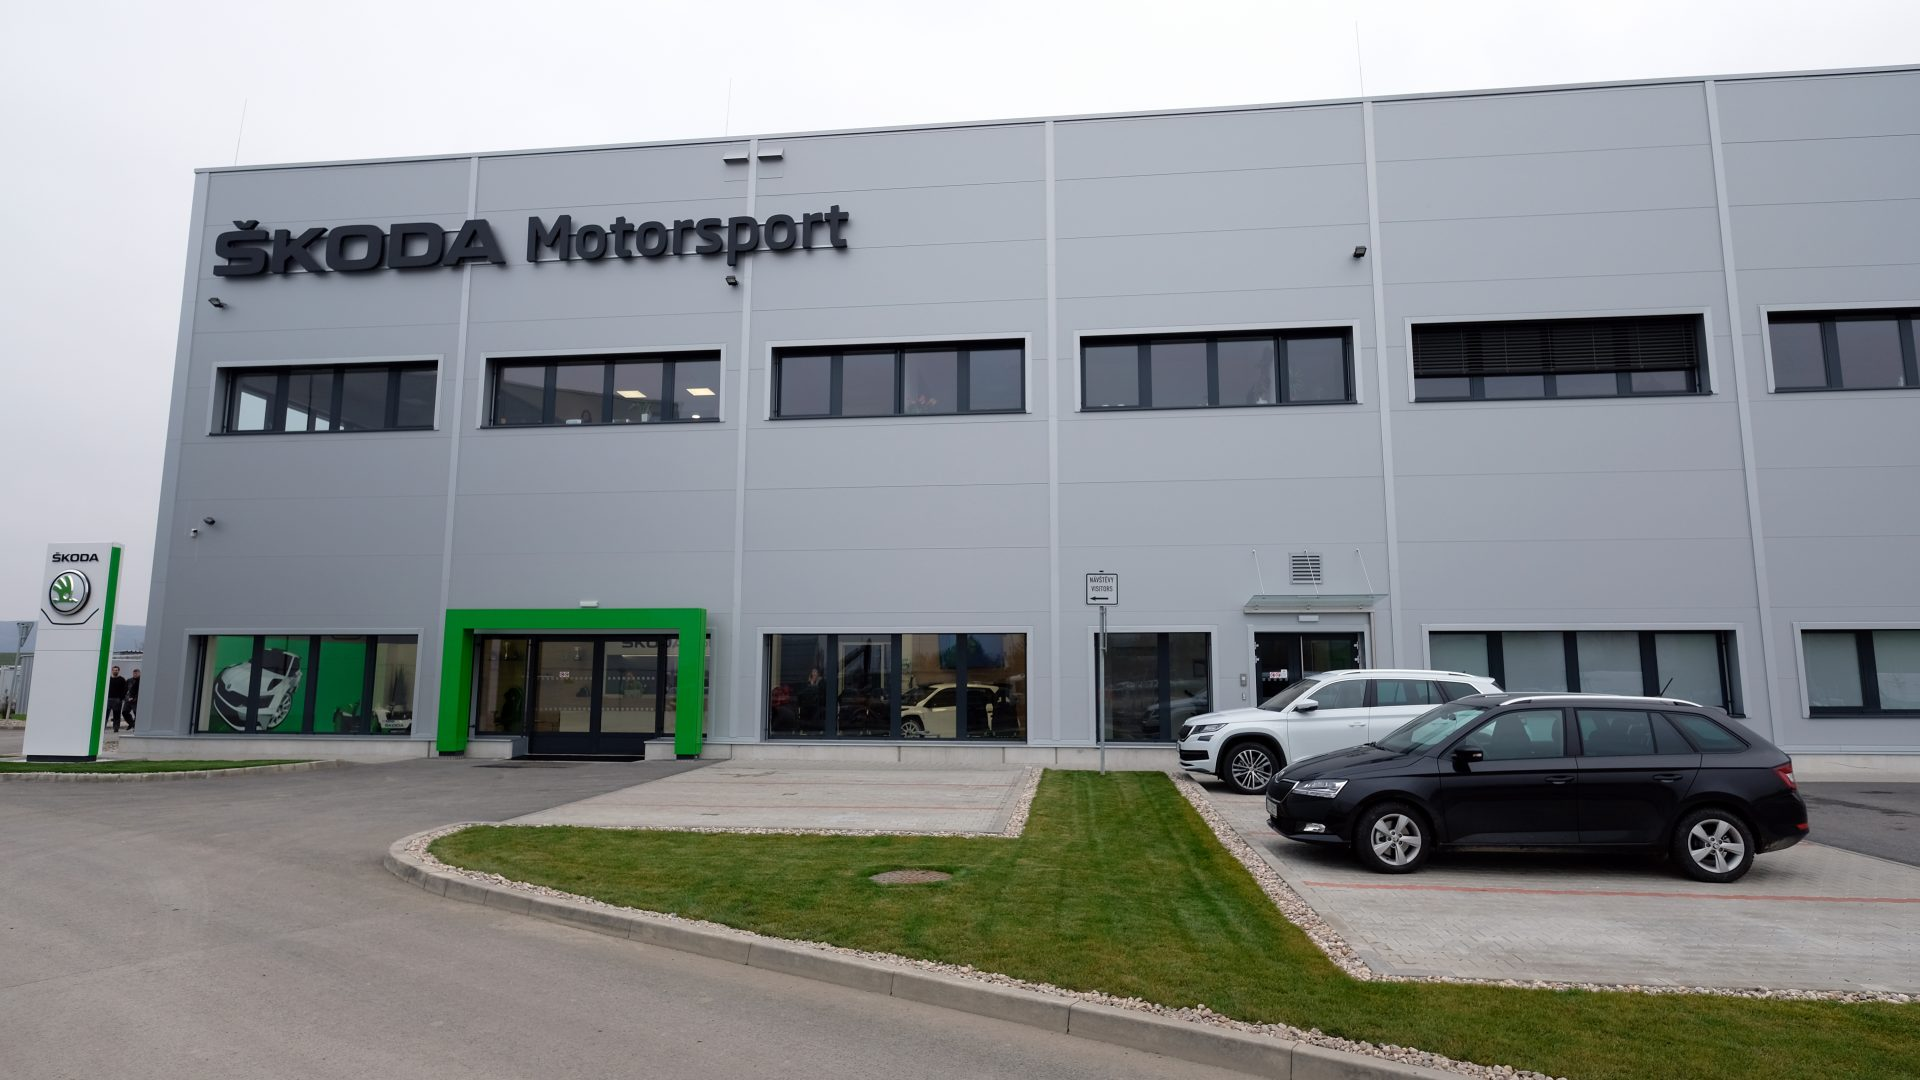 Introducing ŠKODA Motorsport's New Home